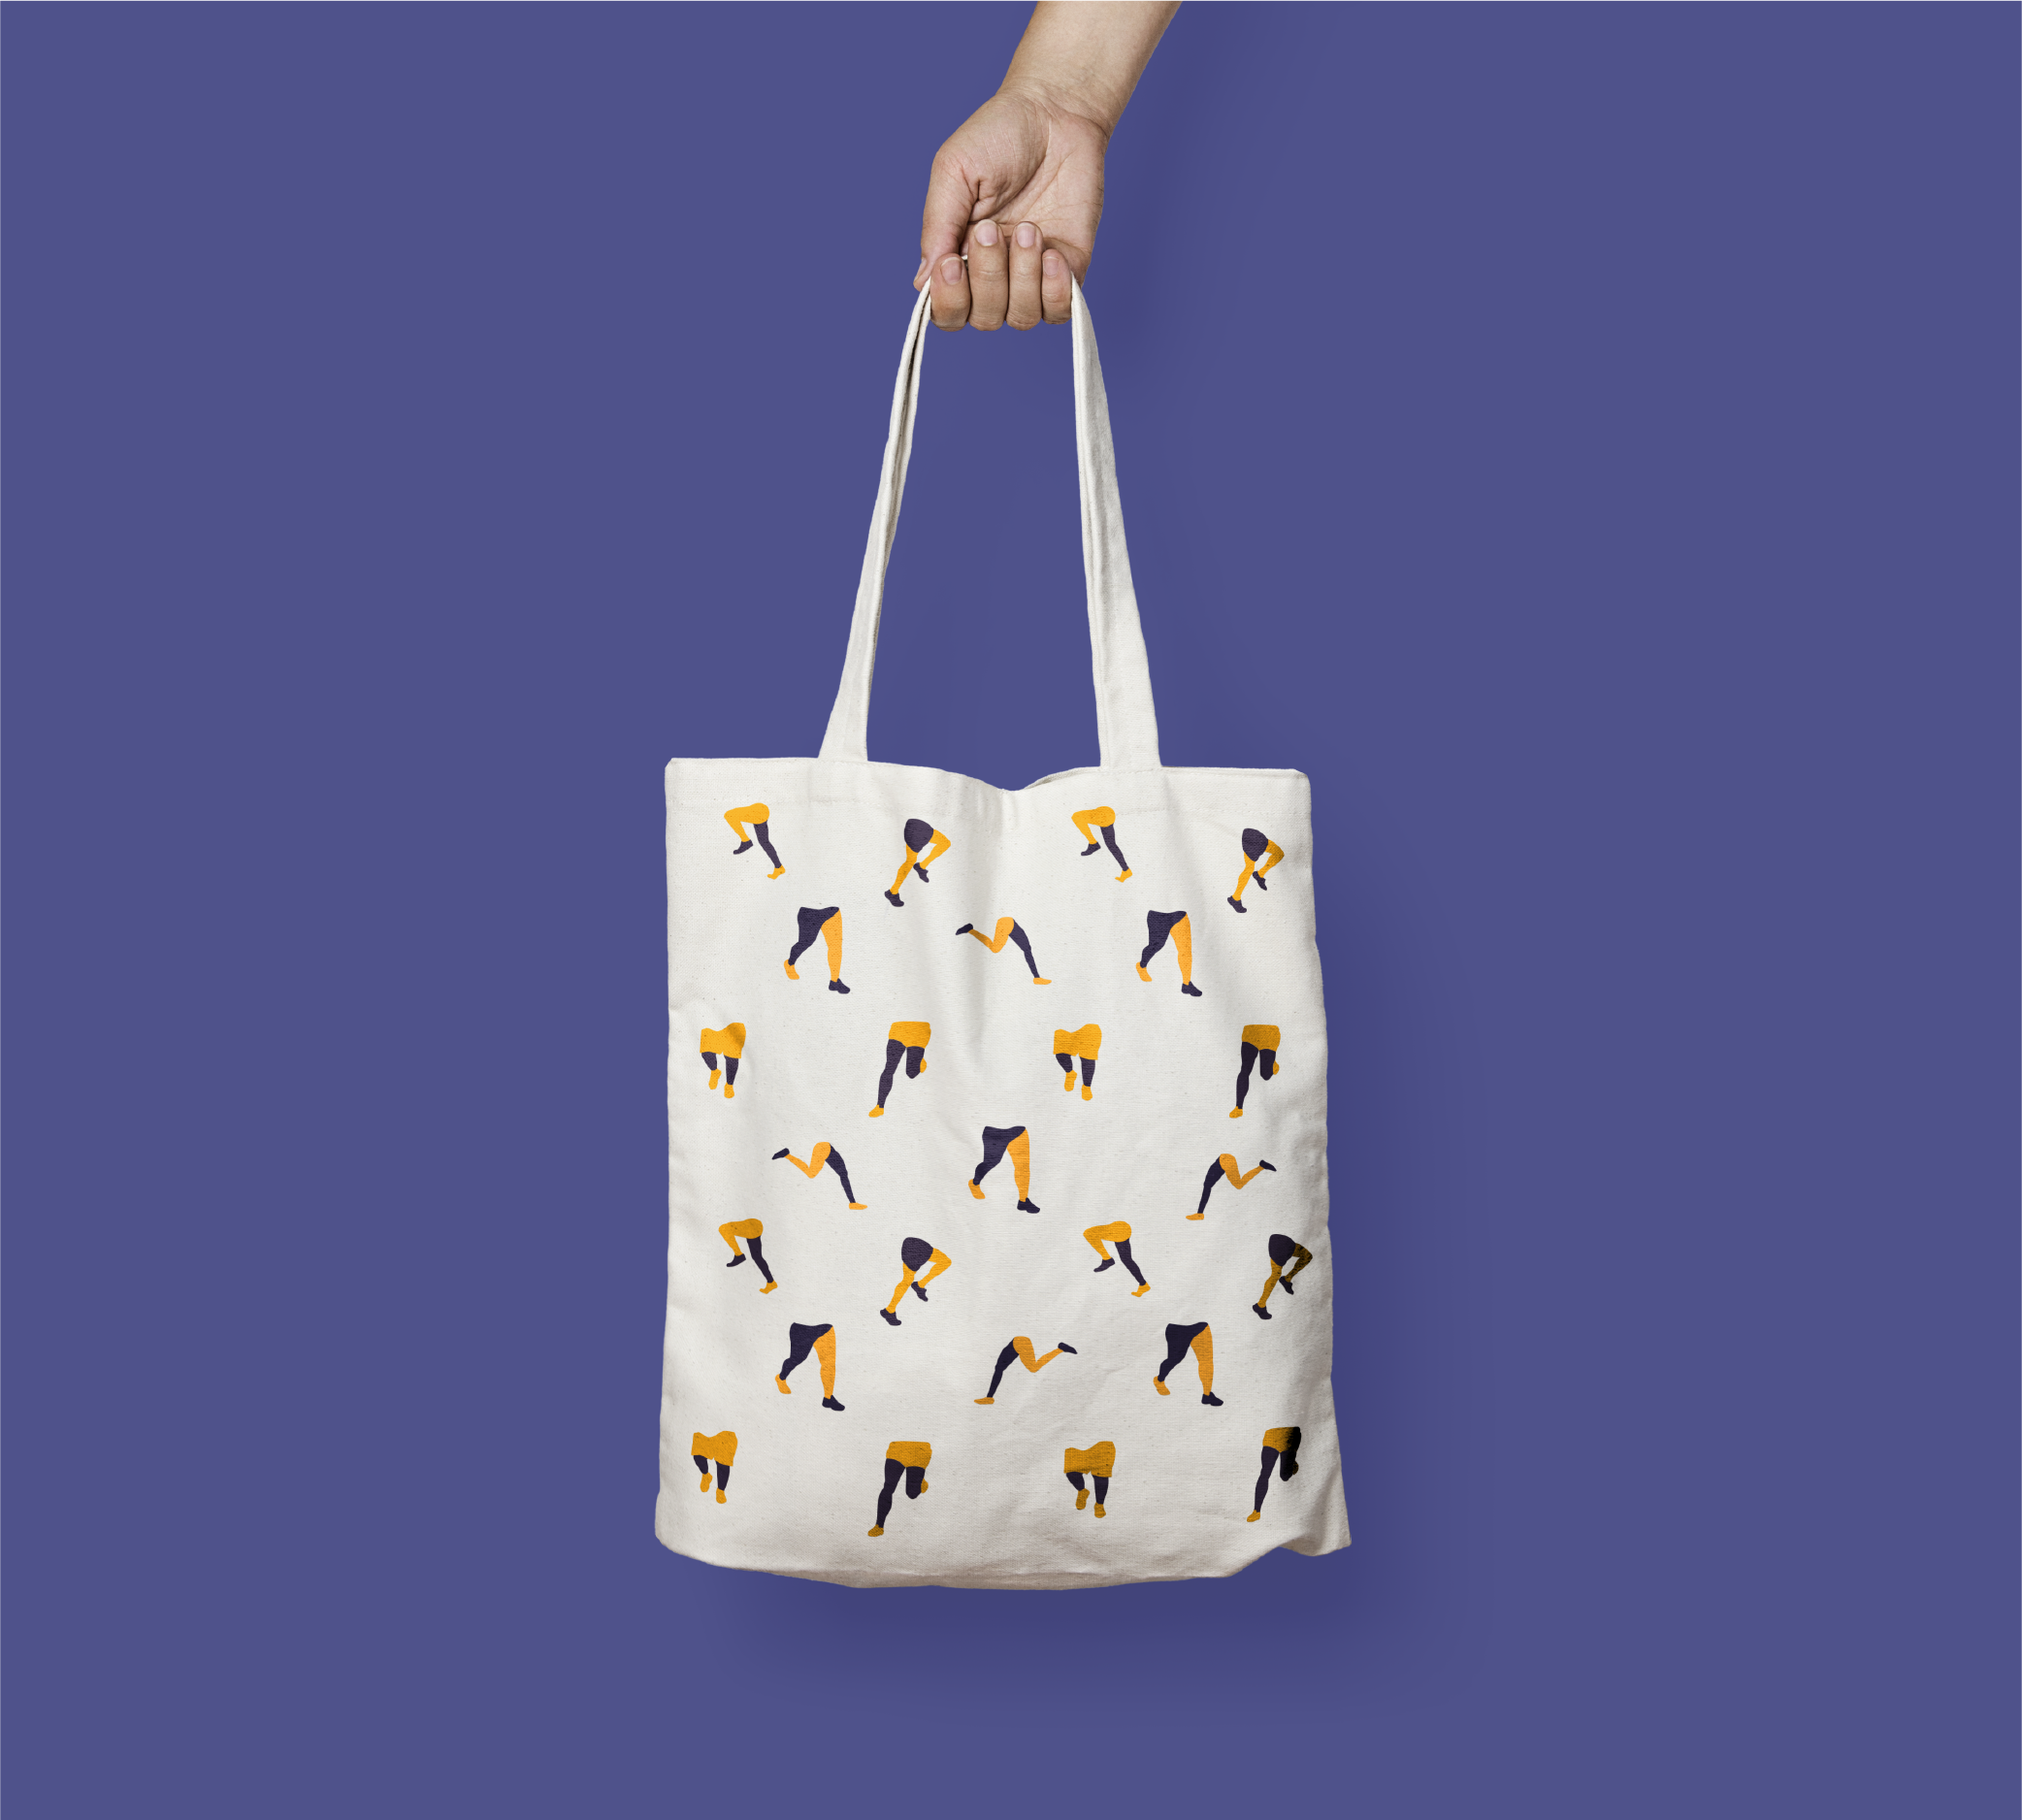 Tote bag for a London running charity